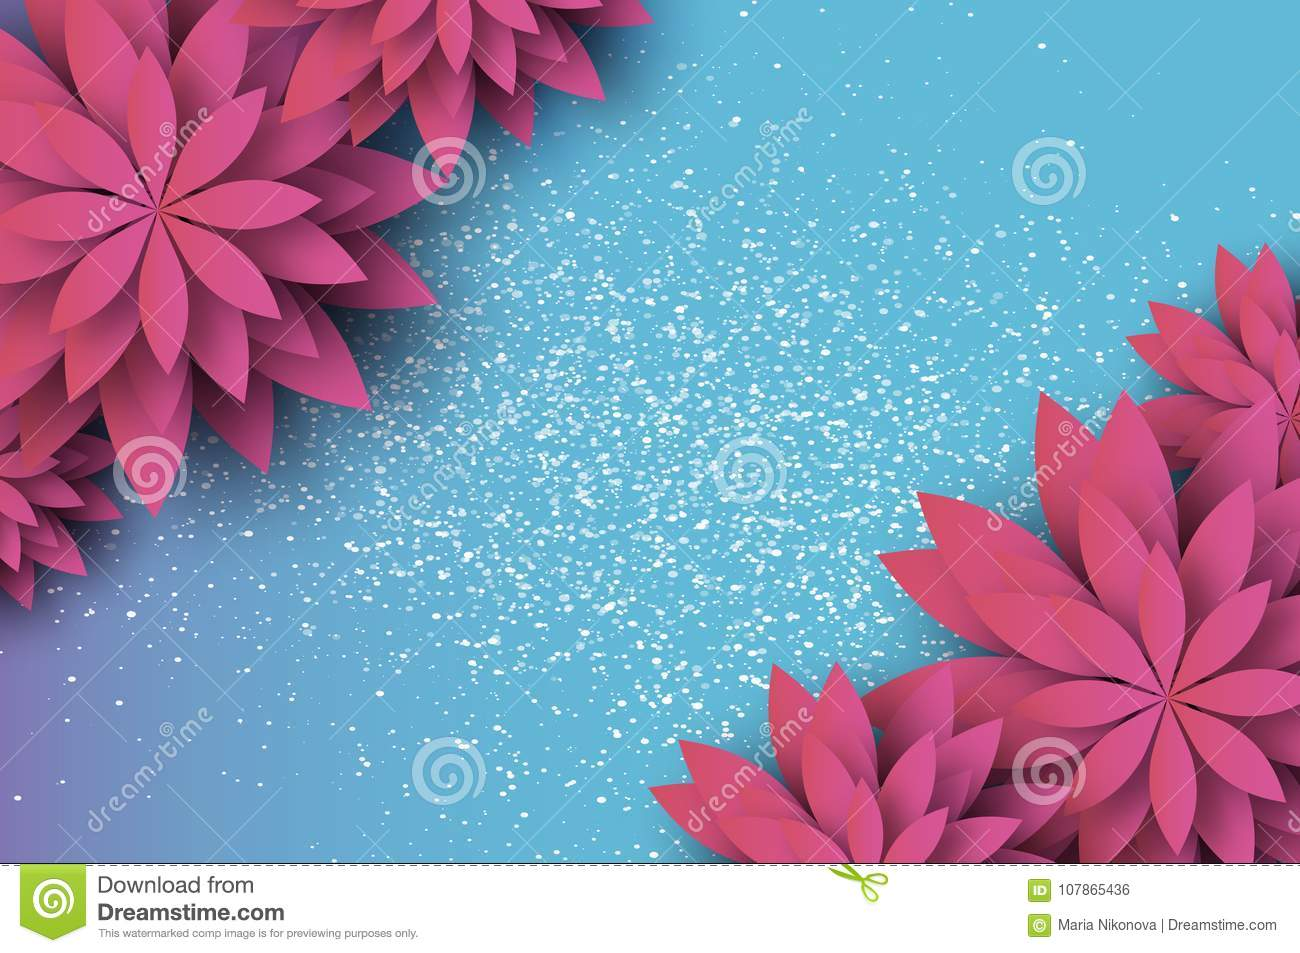 Paper Cut Pink Floral Greeting Card Origami Flower Space For Text